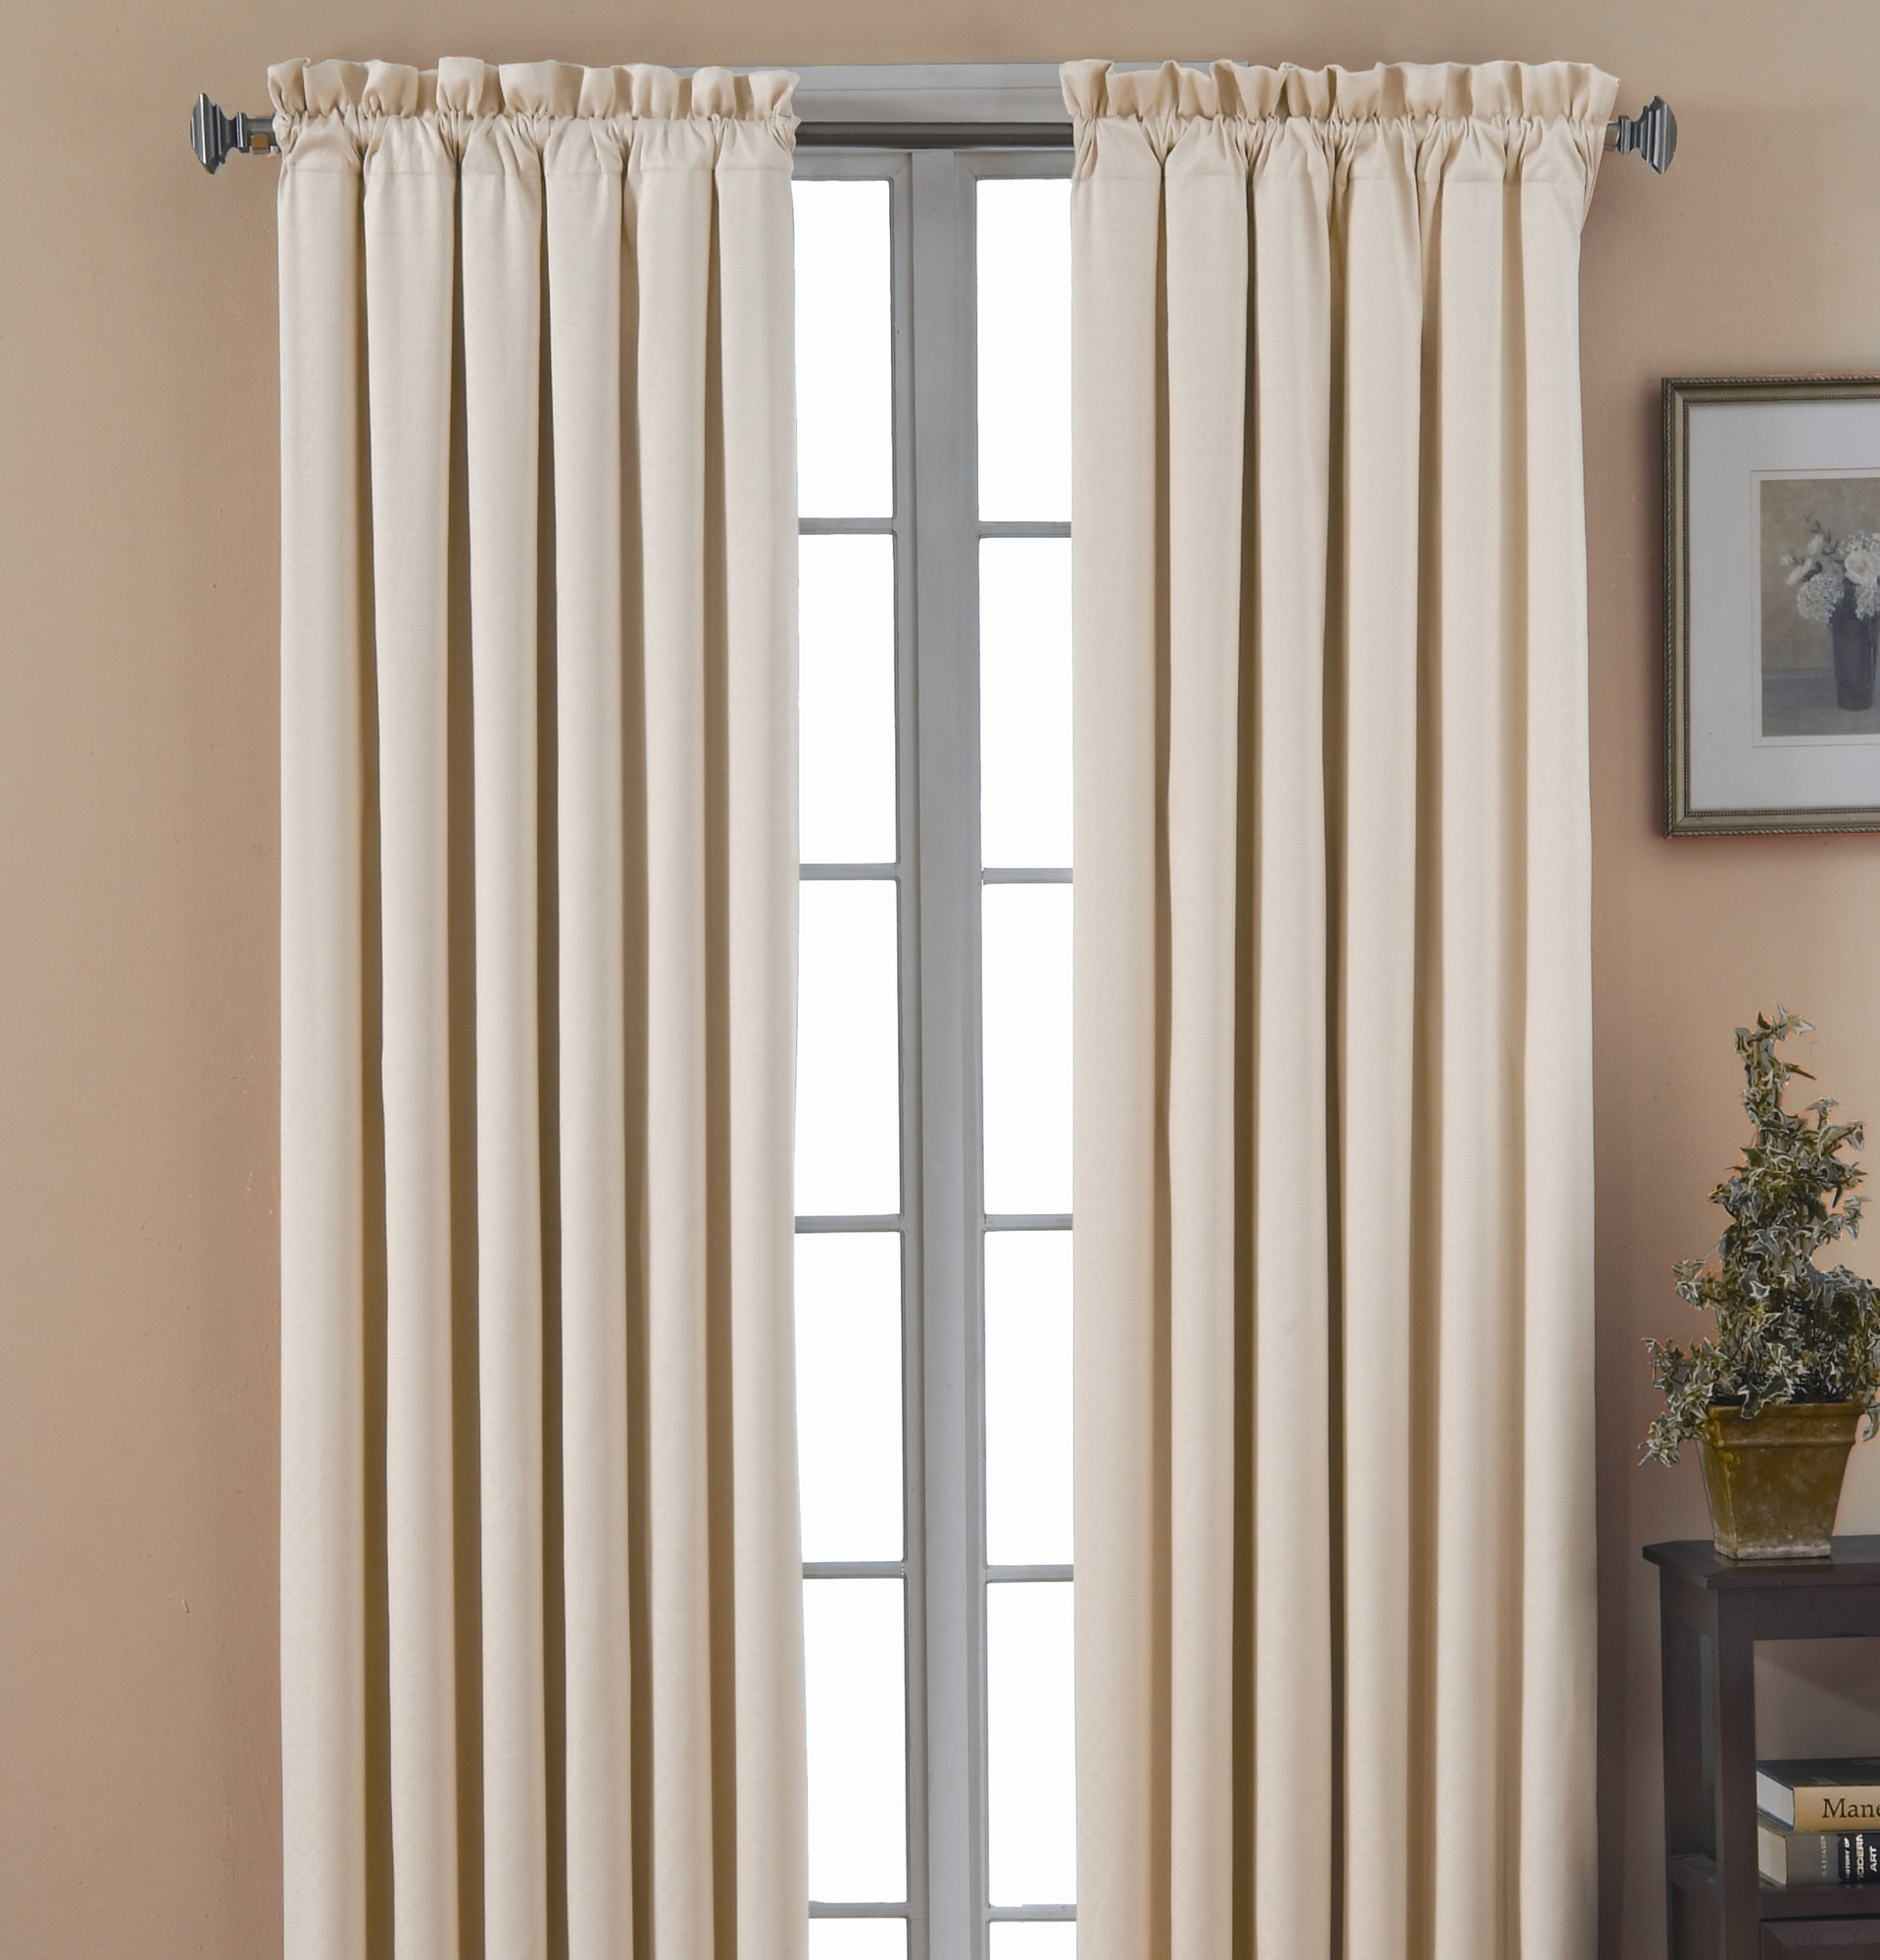 Cheap Blackout Curtains for Inspiring Home Decorating Ideas: Cheap Blackout Curtains | Curtains Thermal Blackout | Opaque Curtains